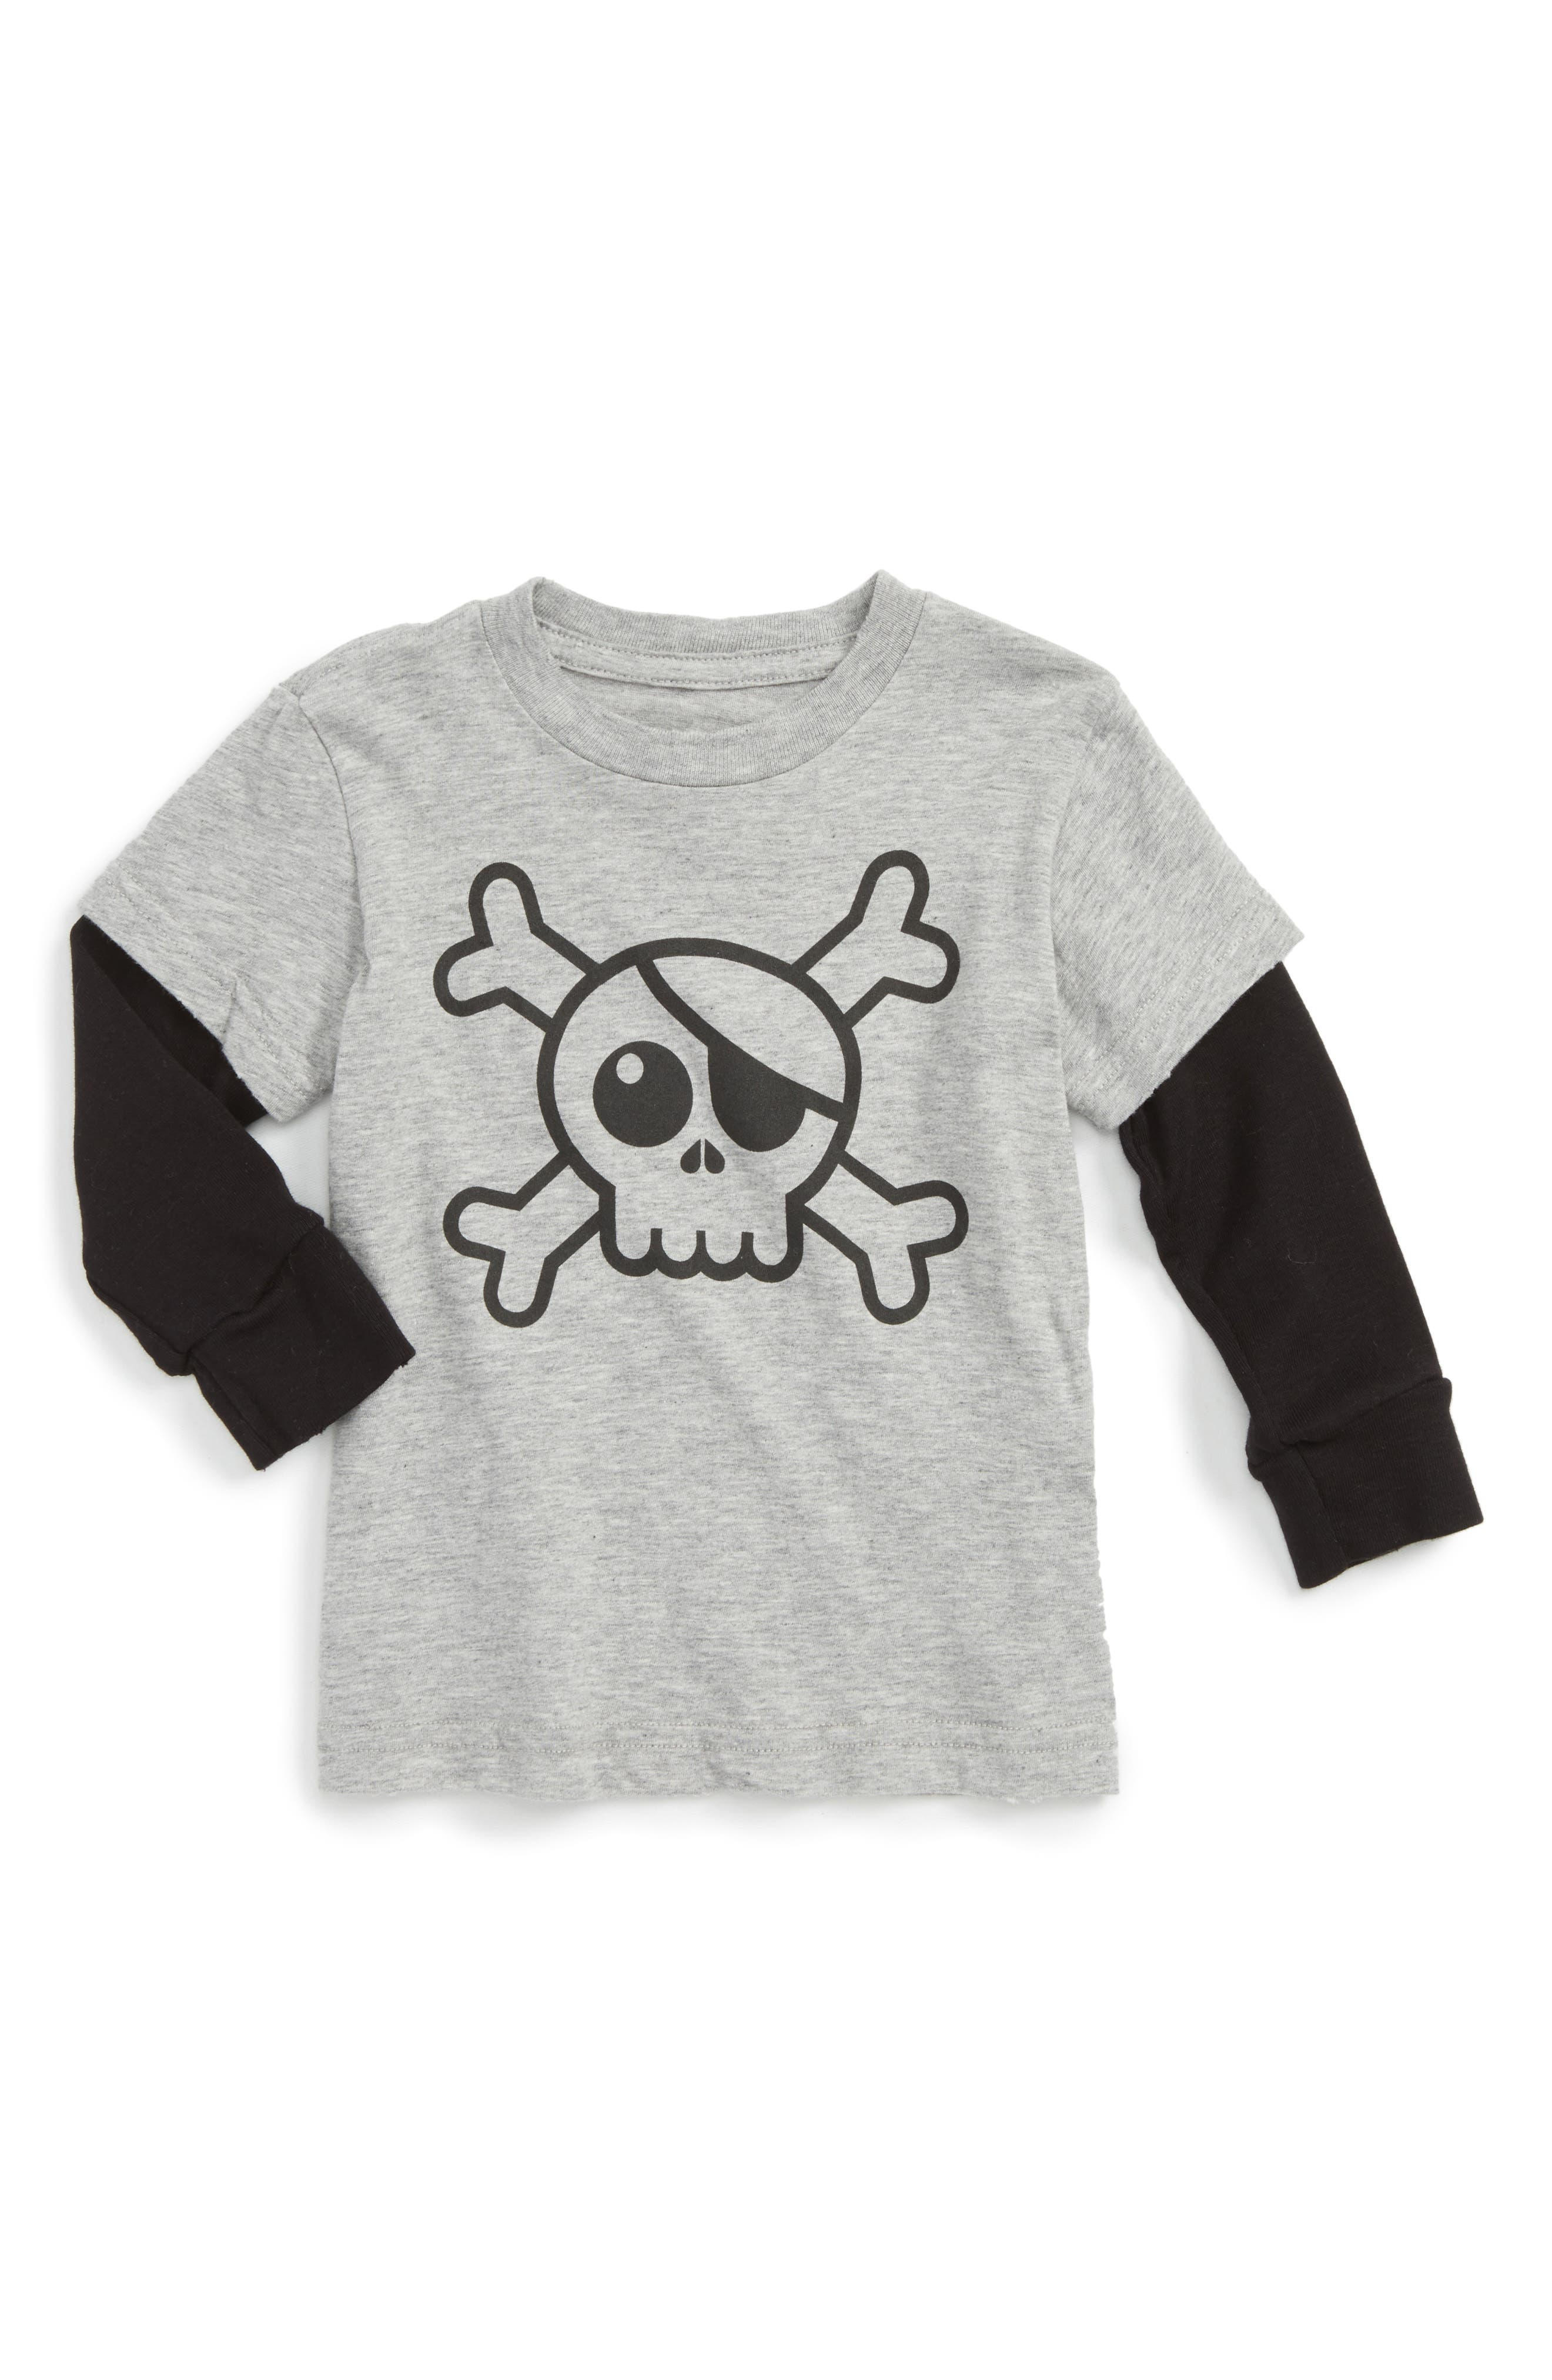 NUNUNU Skull Graphic T-Shirt